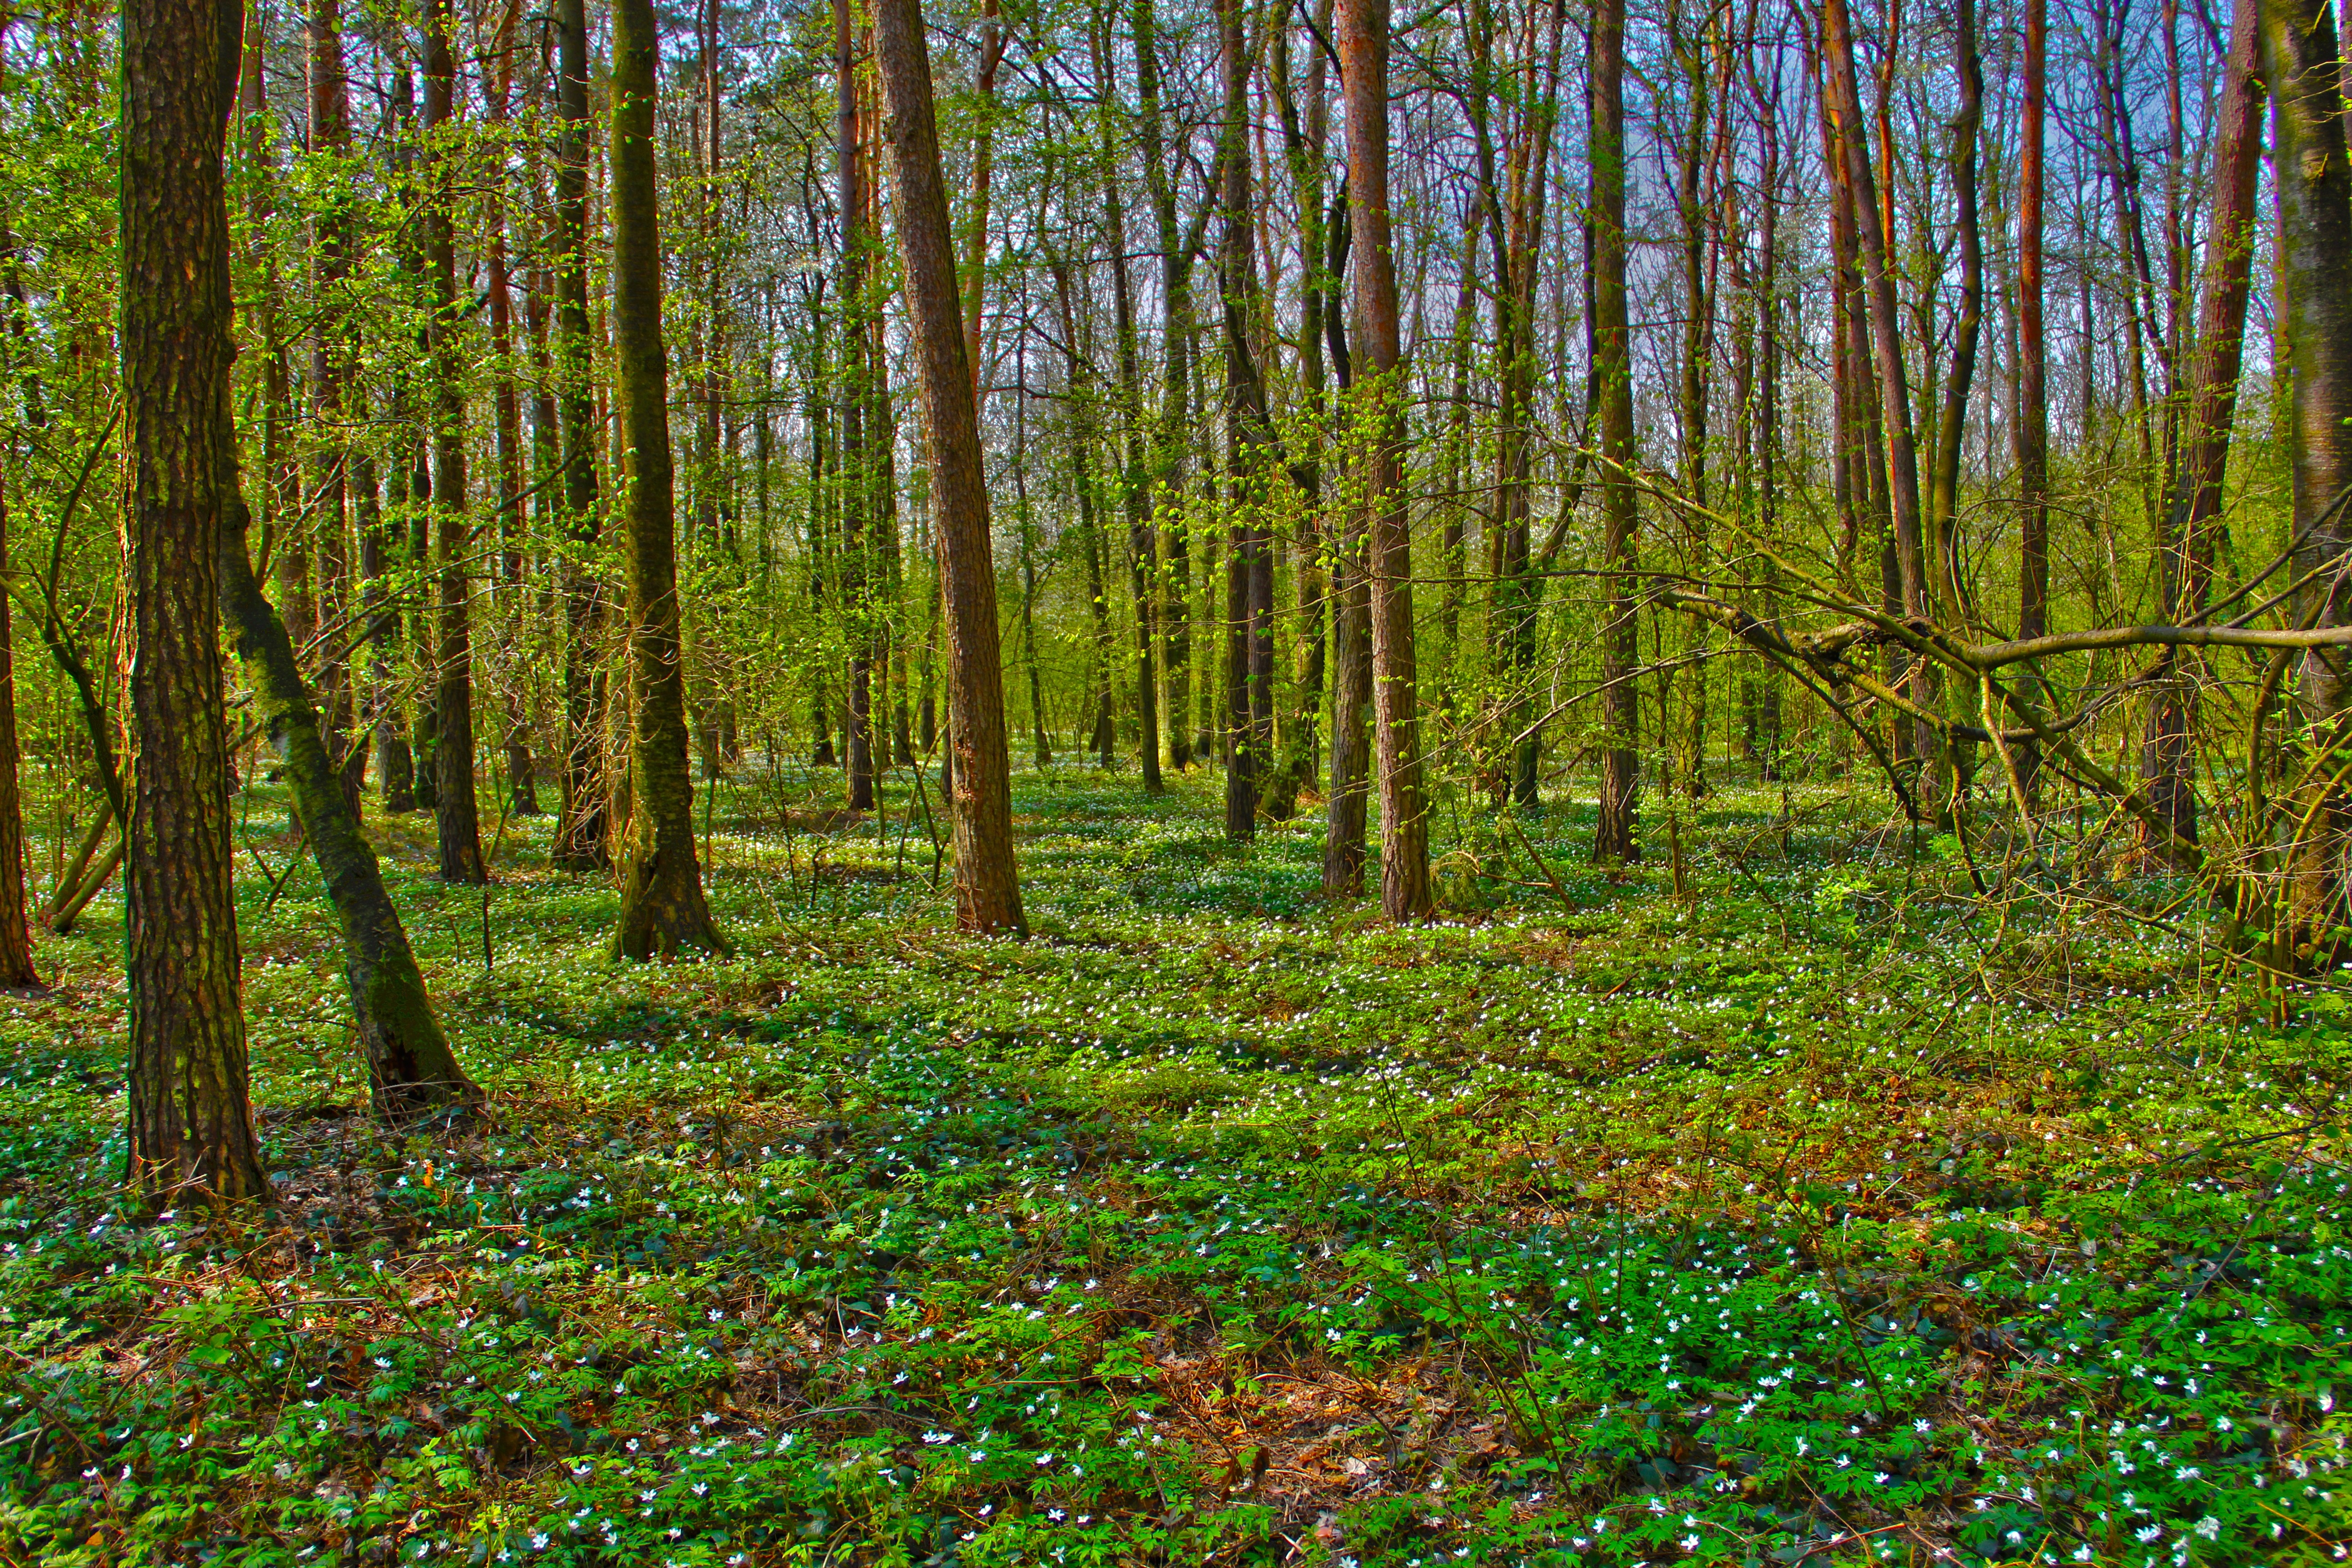 149071 download wallpaper Nature, Forest, Trees, Landscape screensavers and pictures for free